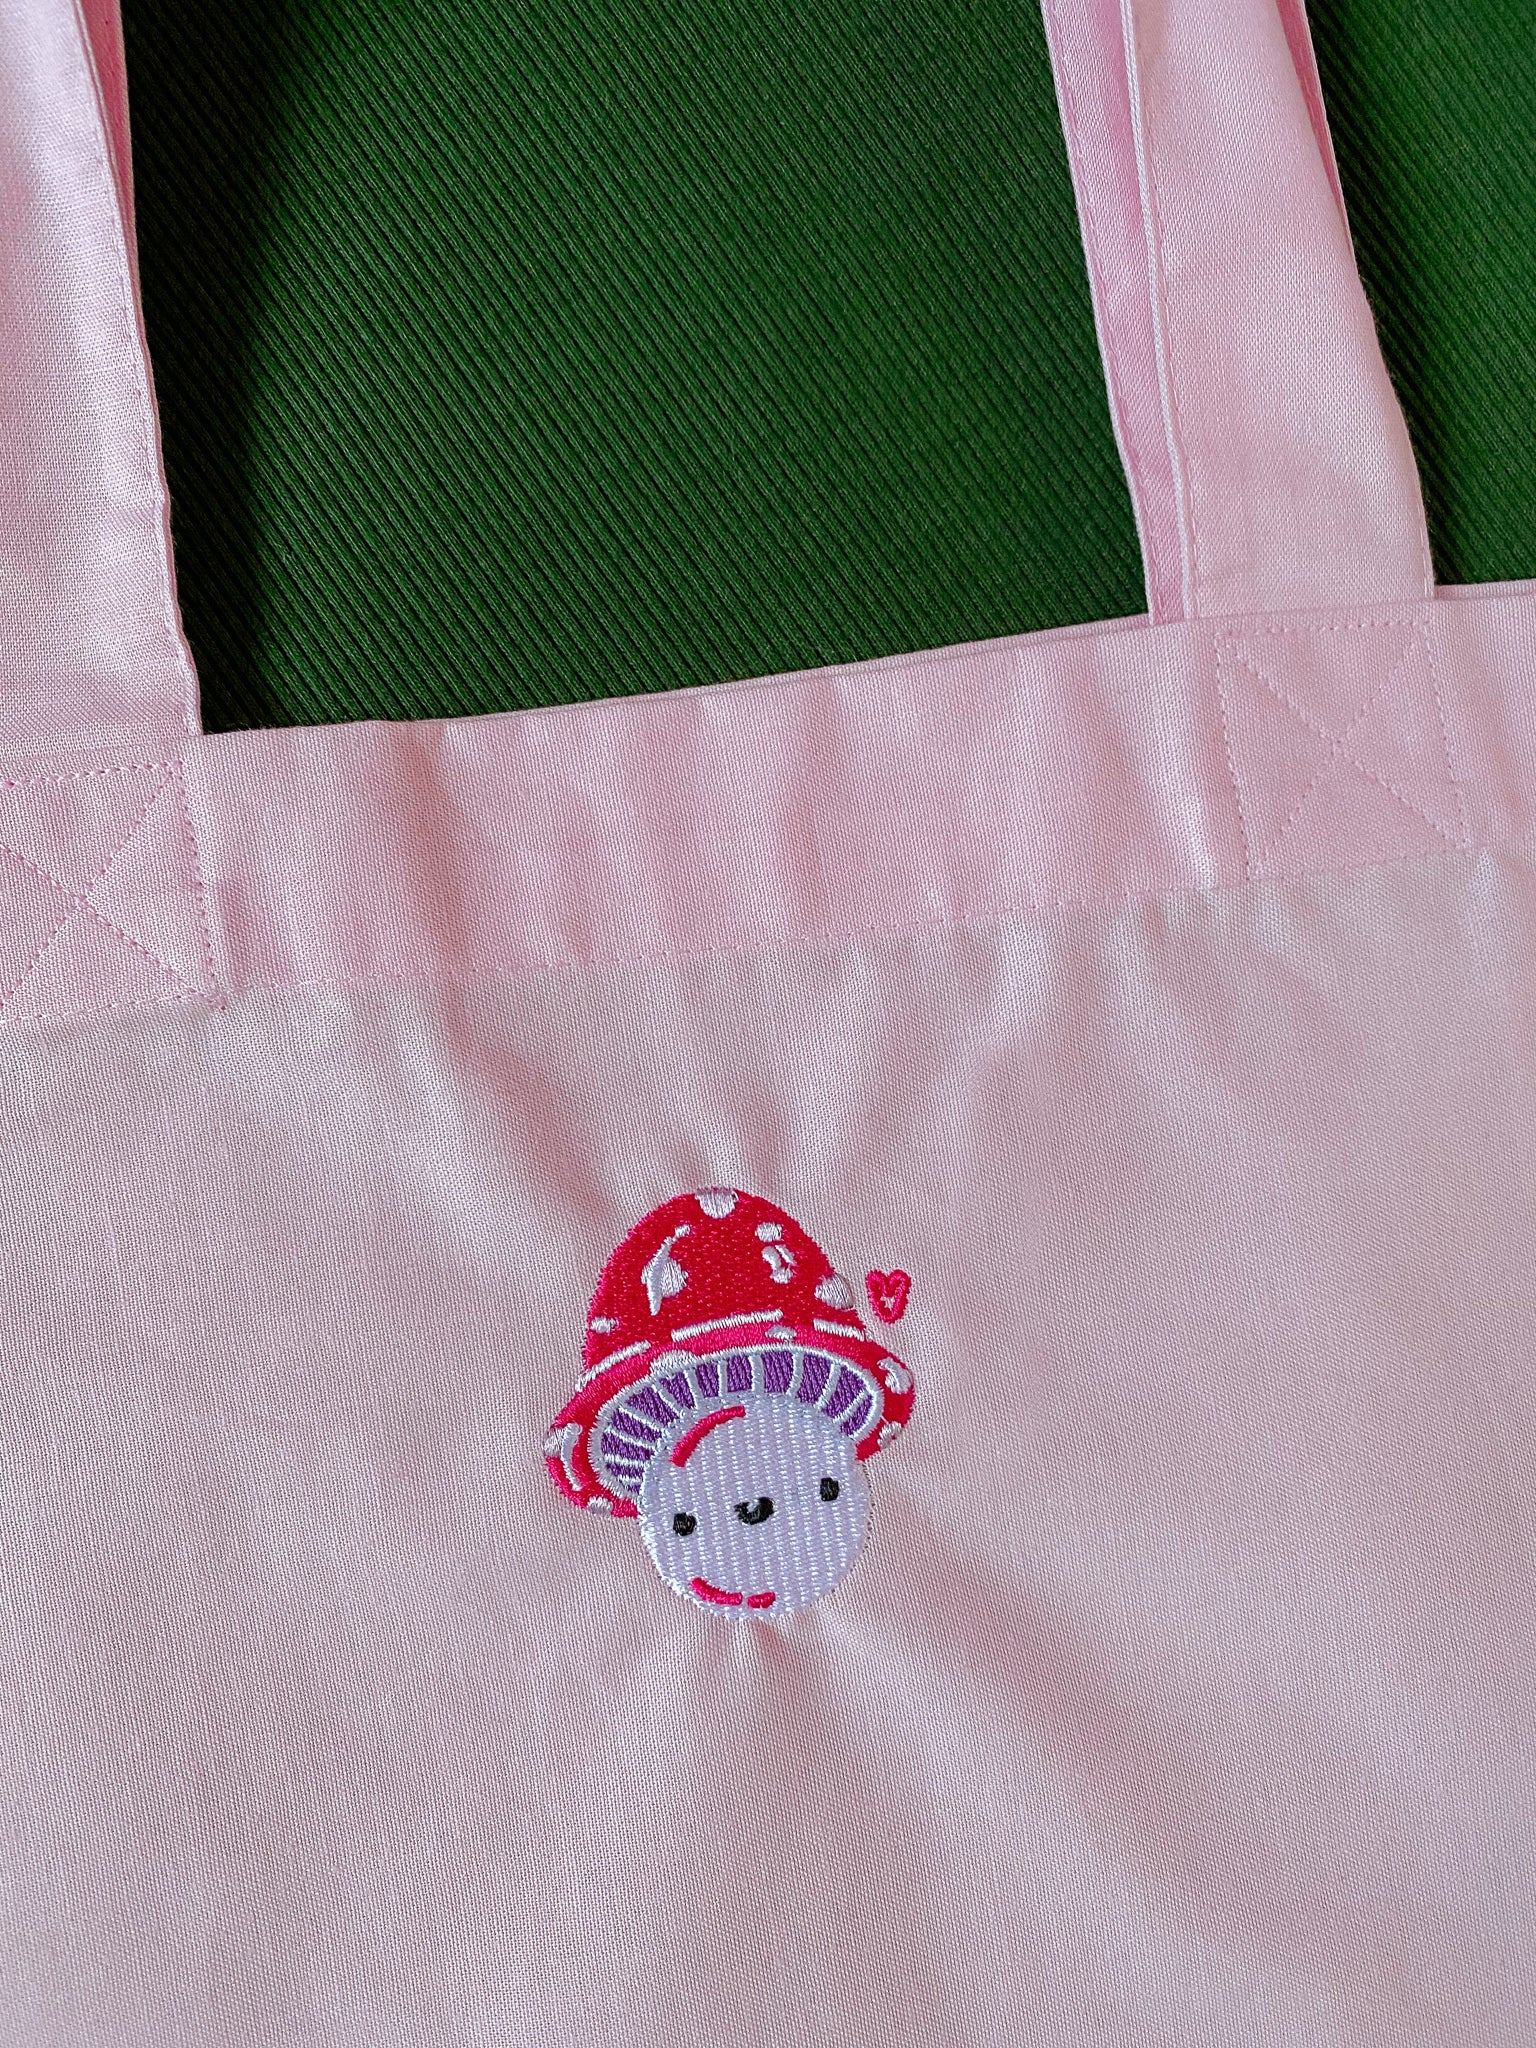 Mr Mush Organic Tote Bag